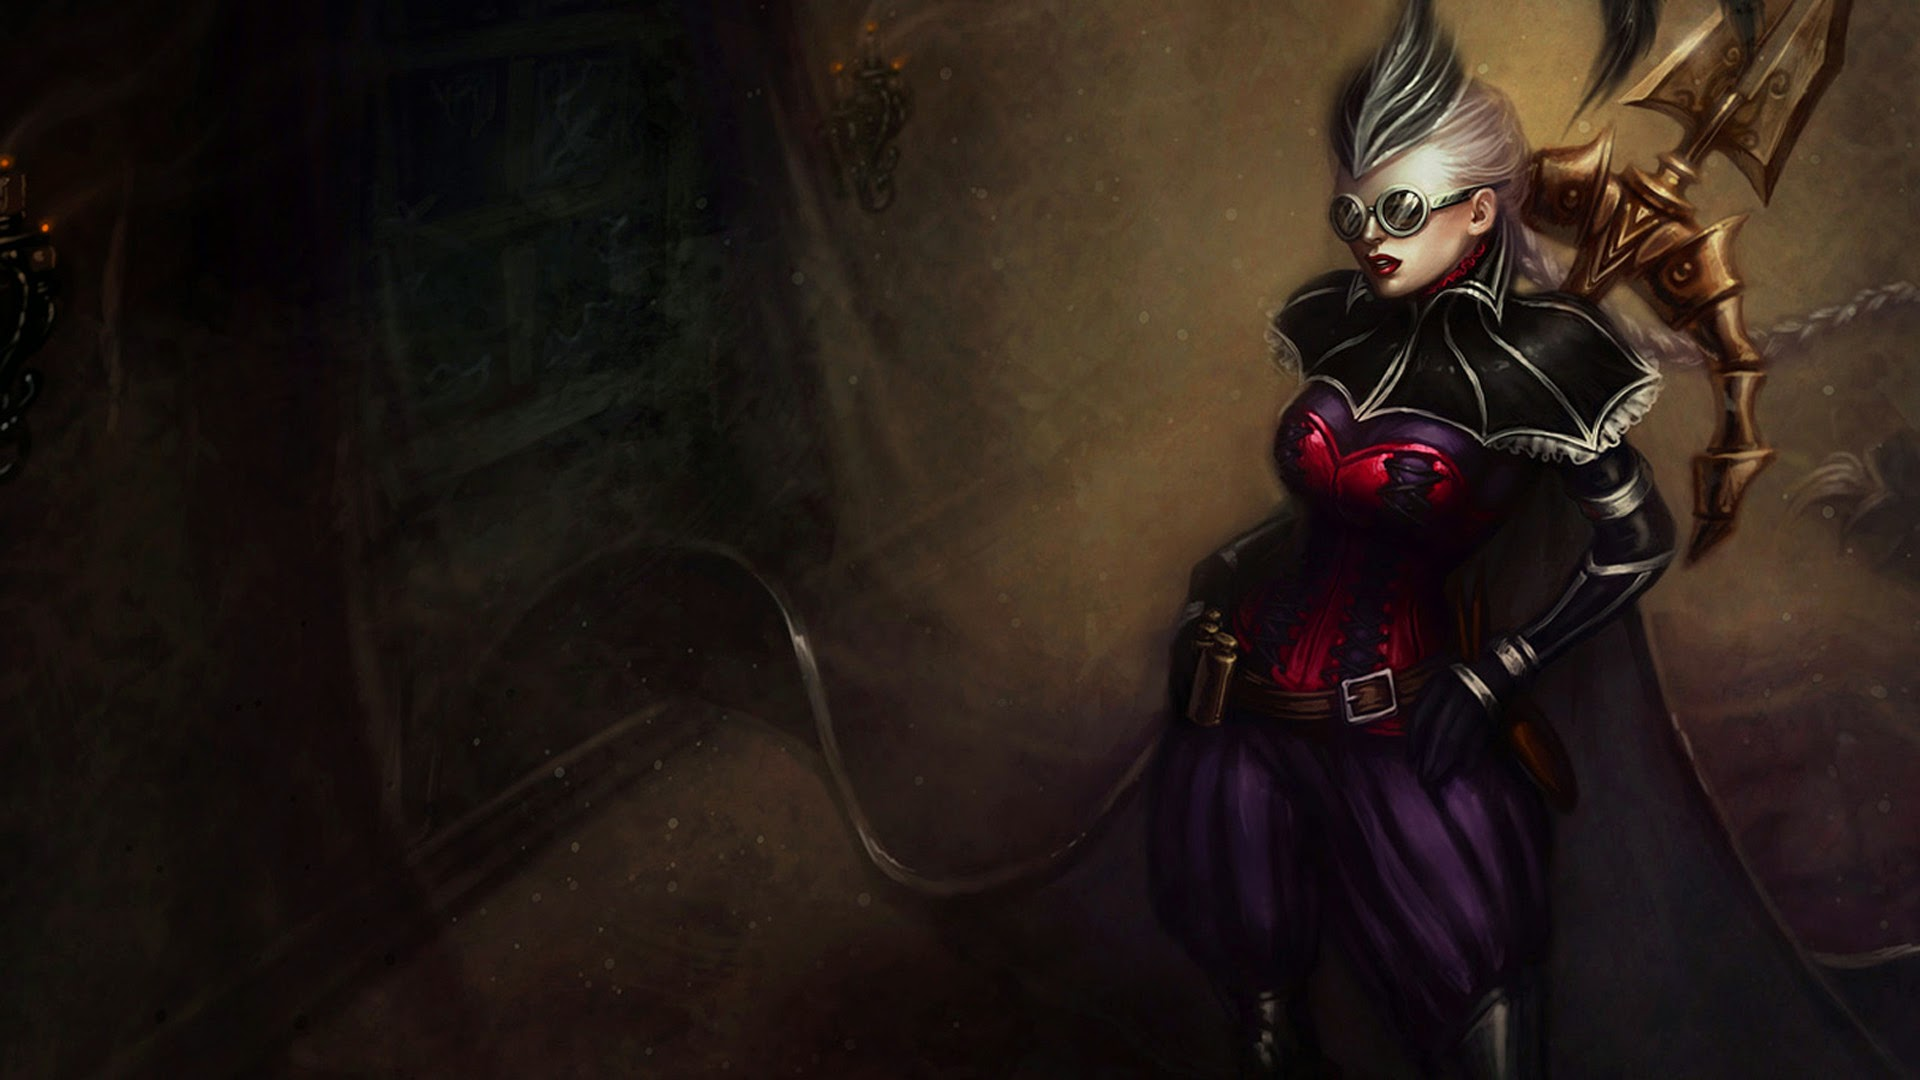 Vayne League of Legends Aristocrat b2 Wallpaper HD